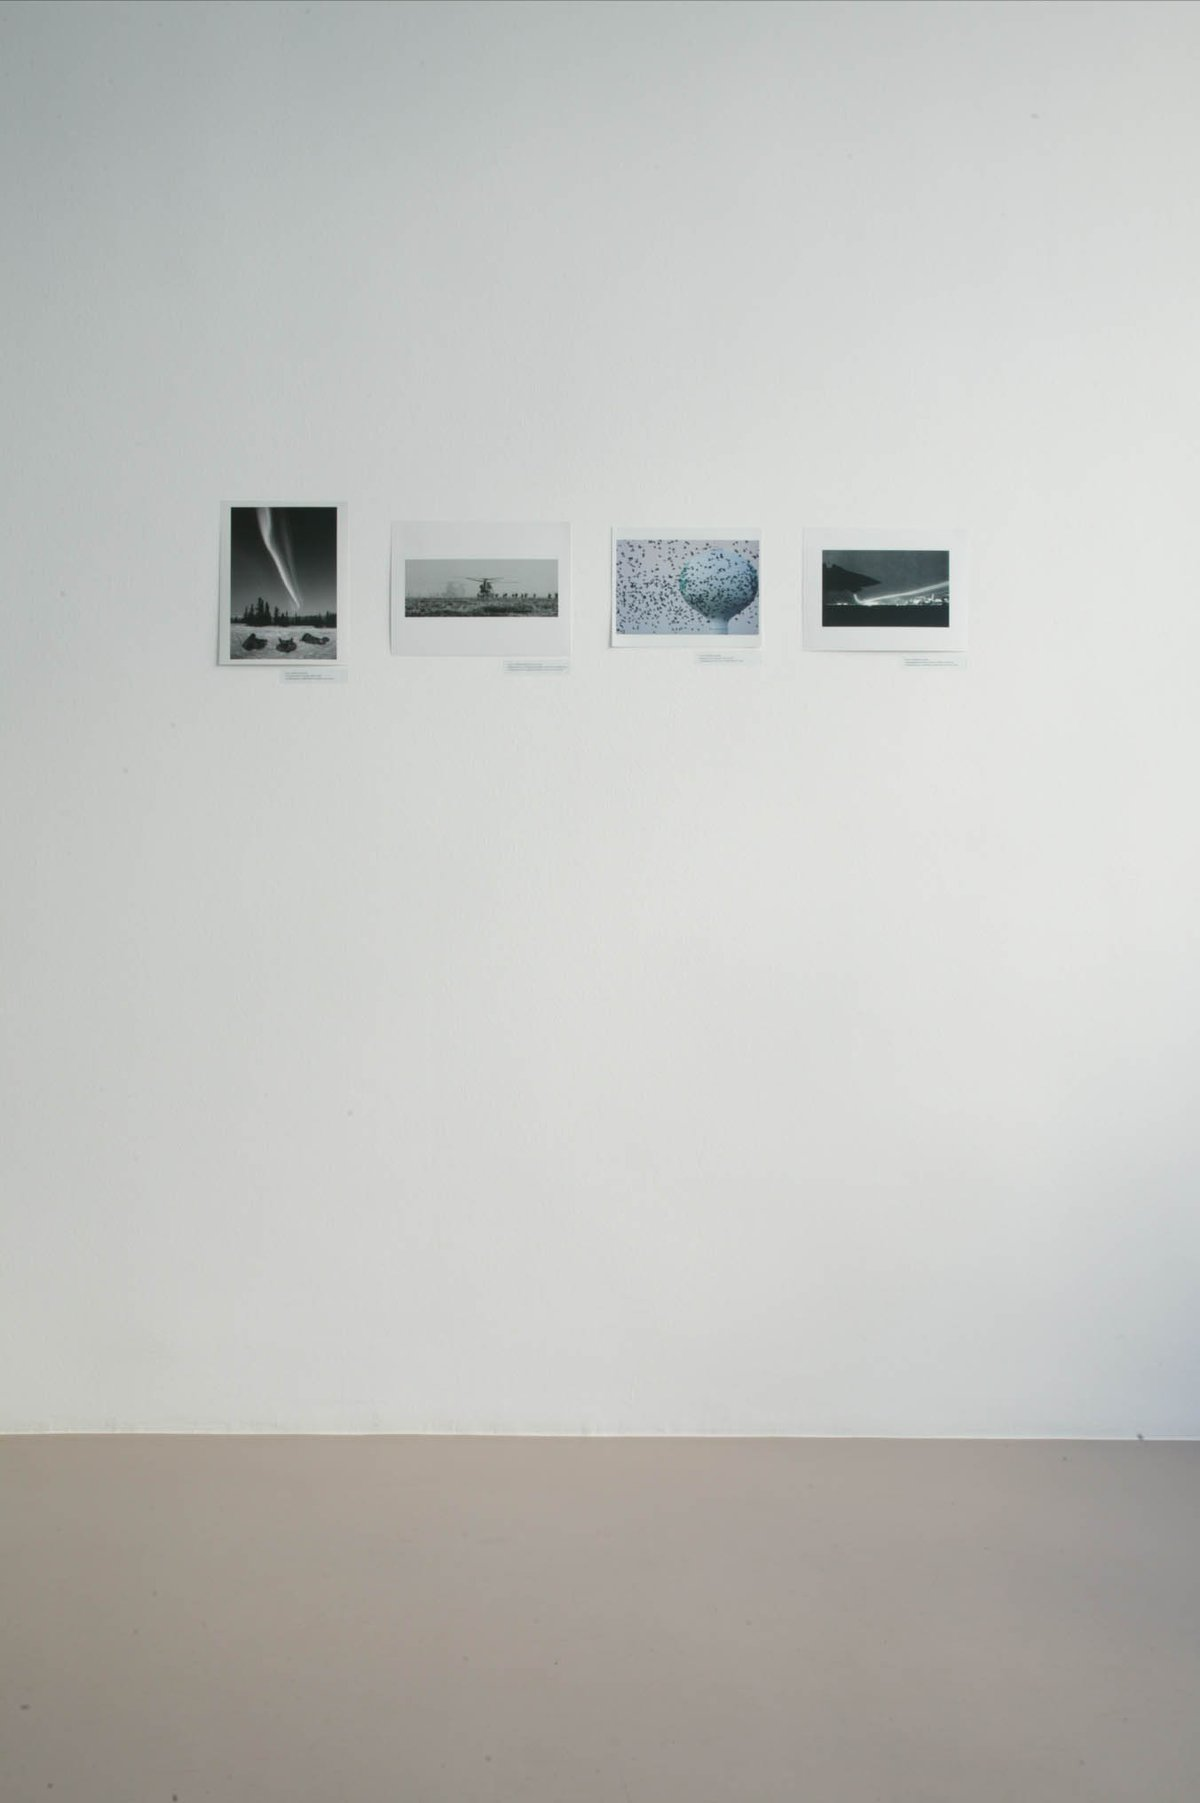 Heike Baranowsky: American Skies. February 1 – March 29, 2003